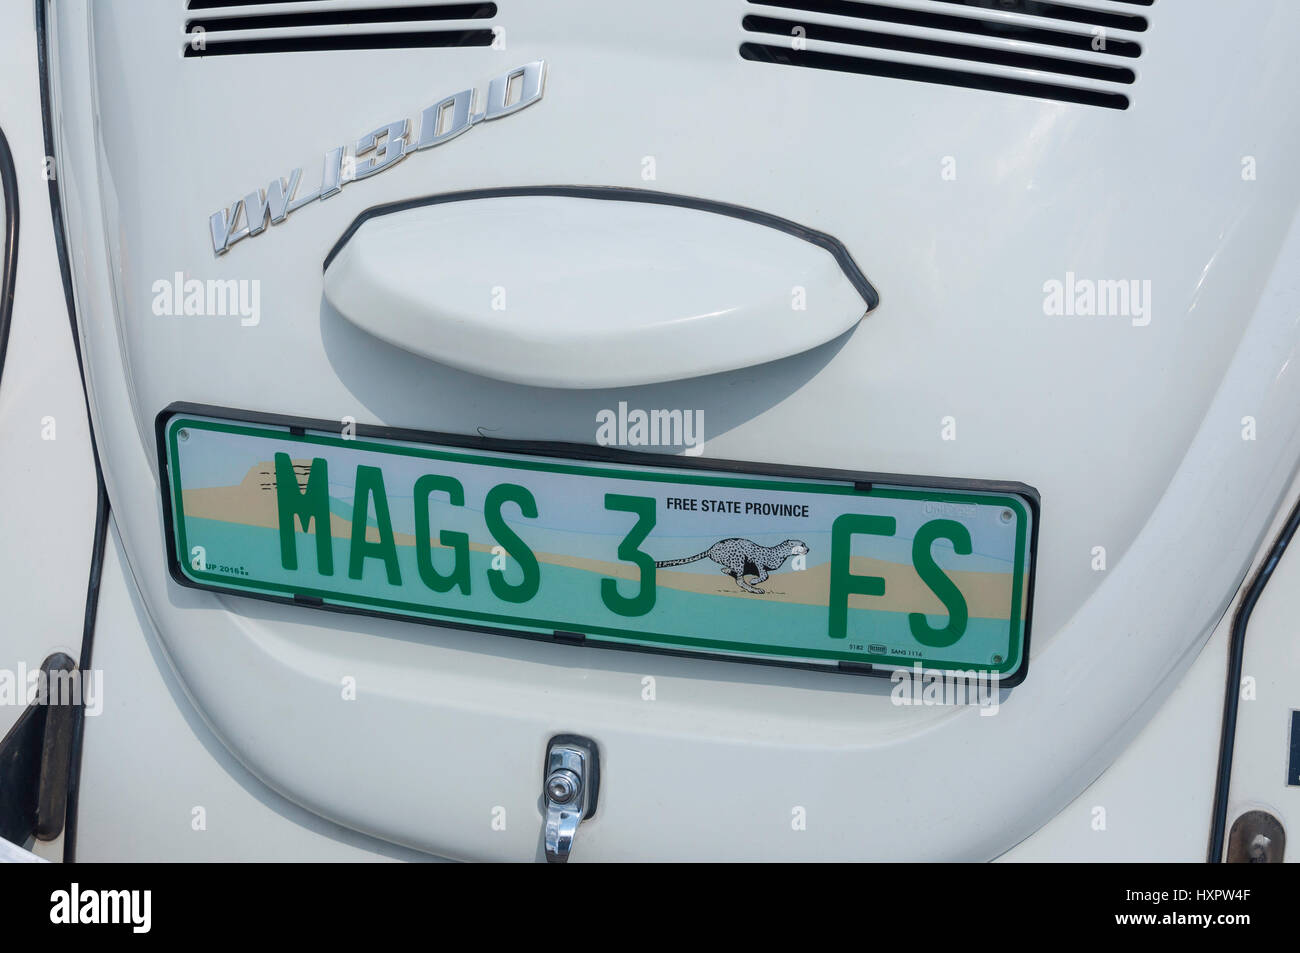 Free State Province number plates on Volkswagon Beetle, Bethlehem, Free State Province, Republic of South Africa - Stock Image